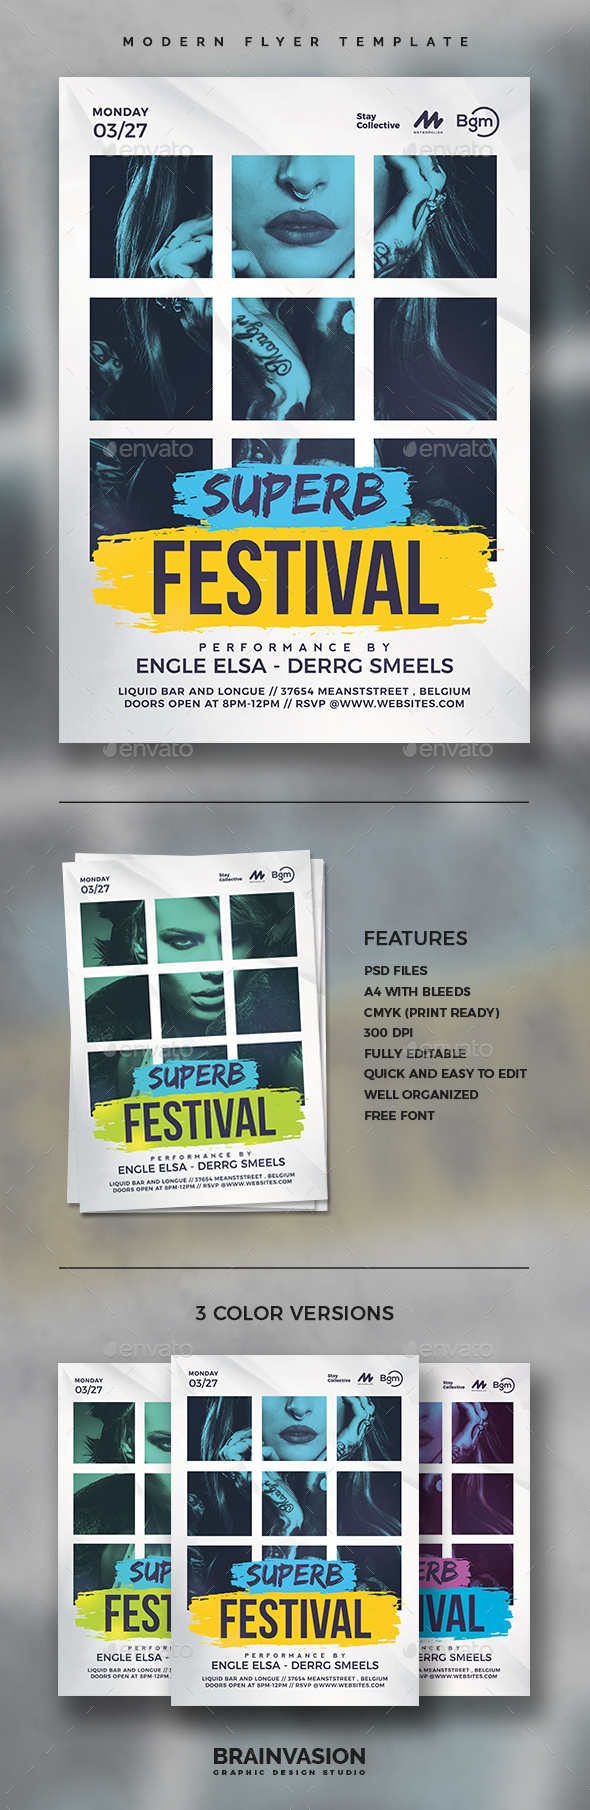 Modern Flyer Template Vol.05 - Concerts Events